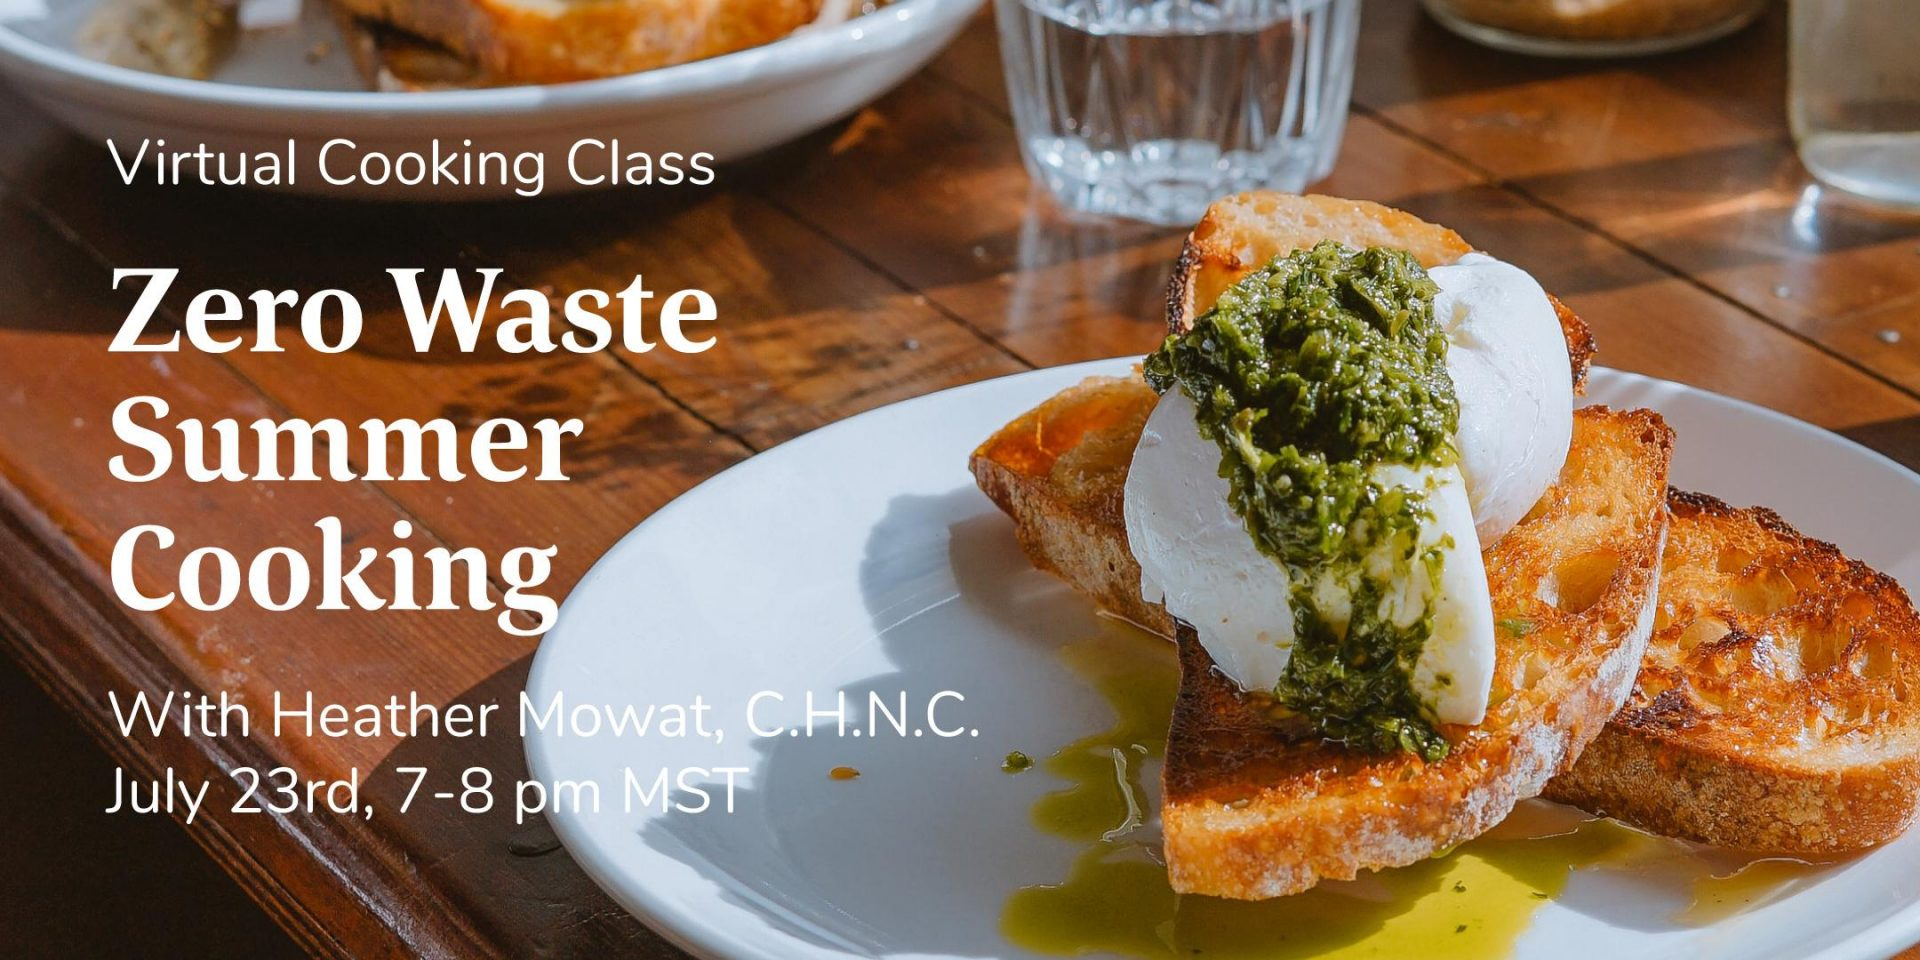 Zero Waste Summer Cooking – Virtual Cooking Class